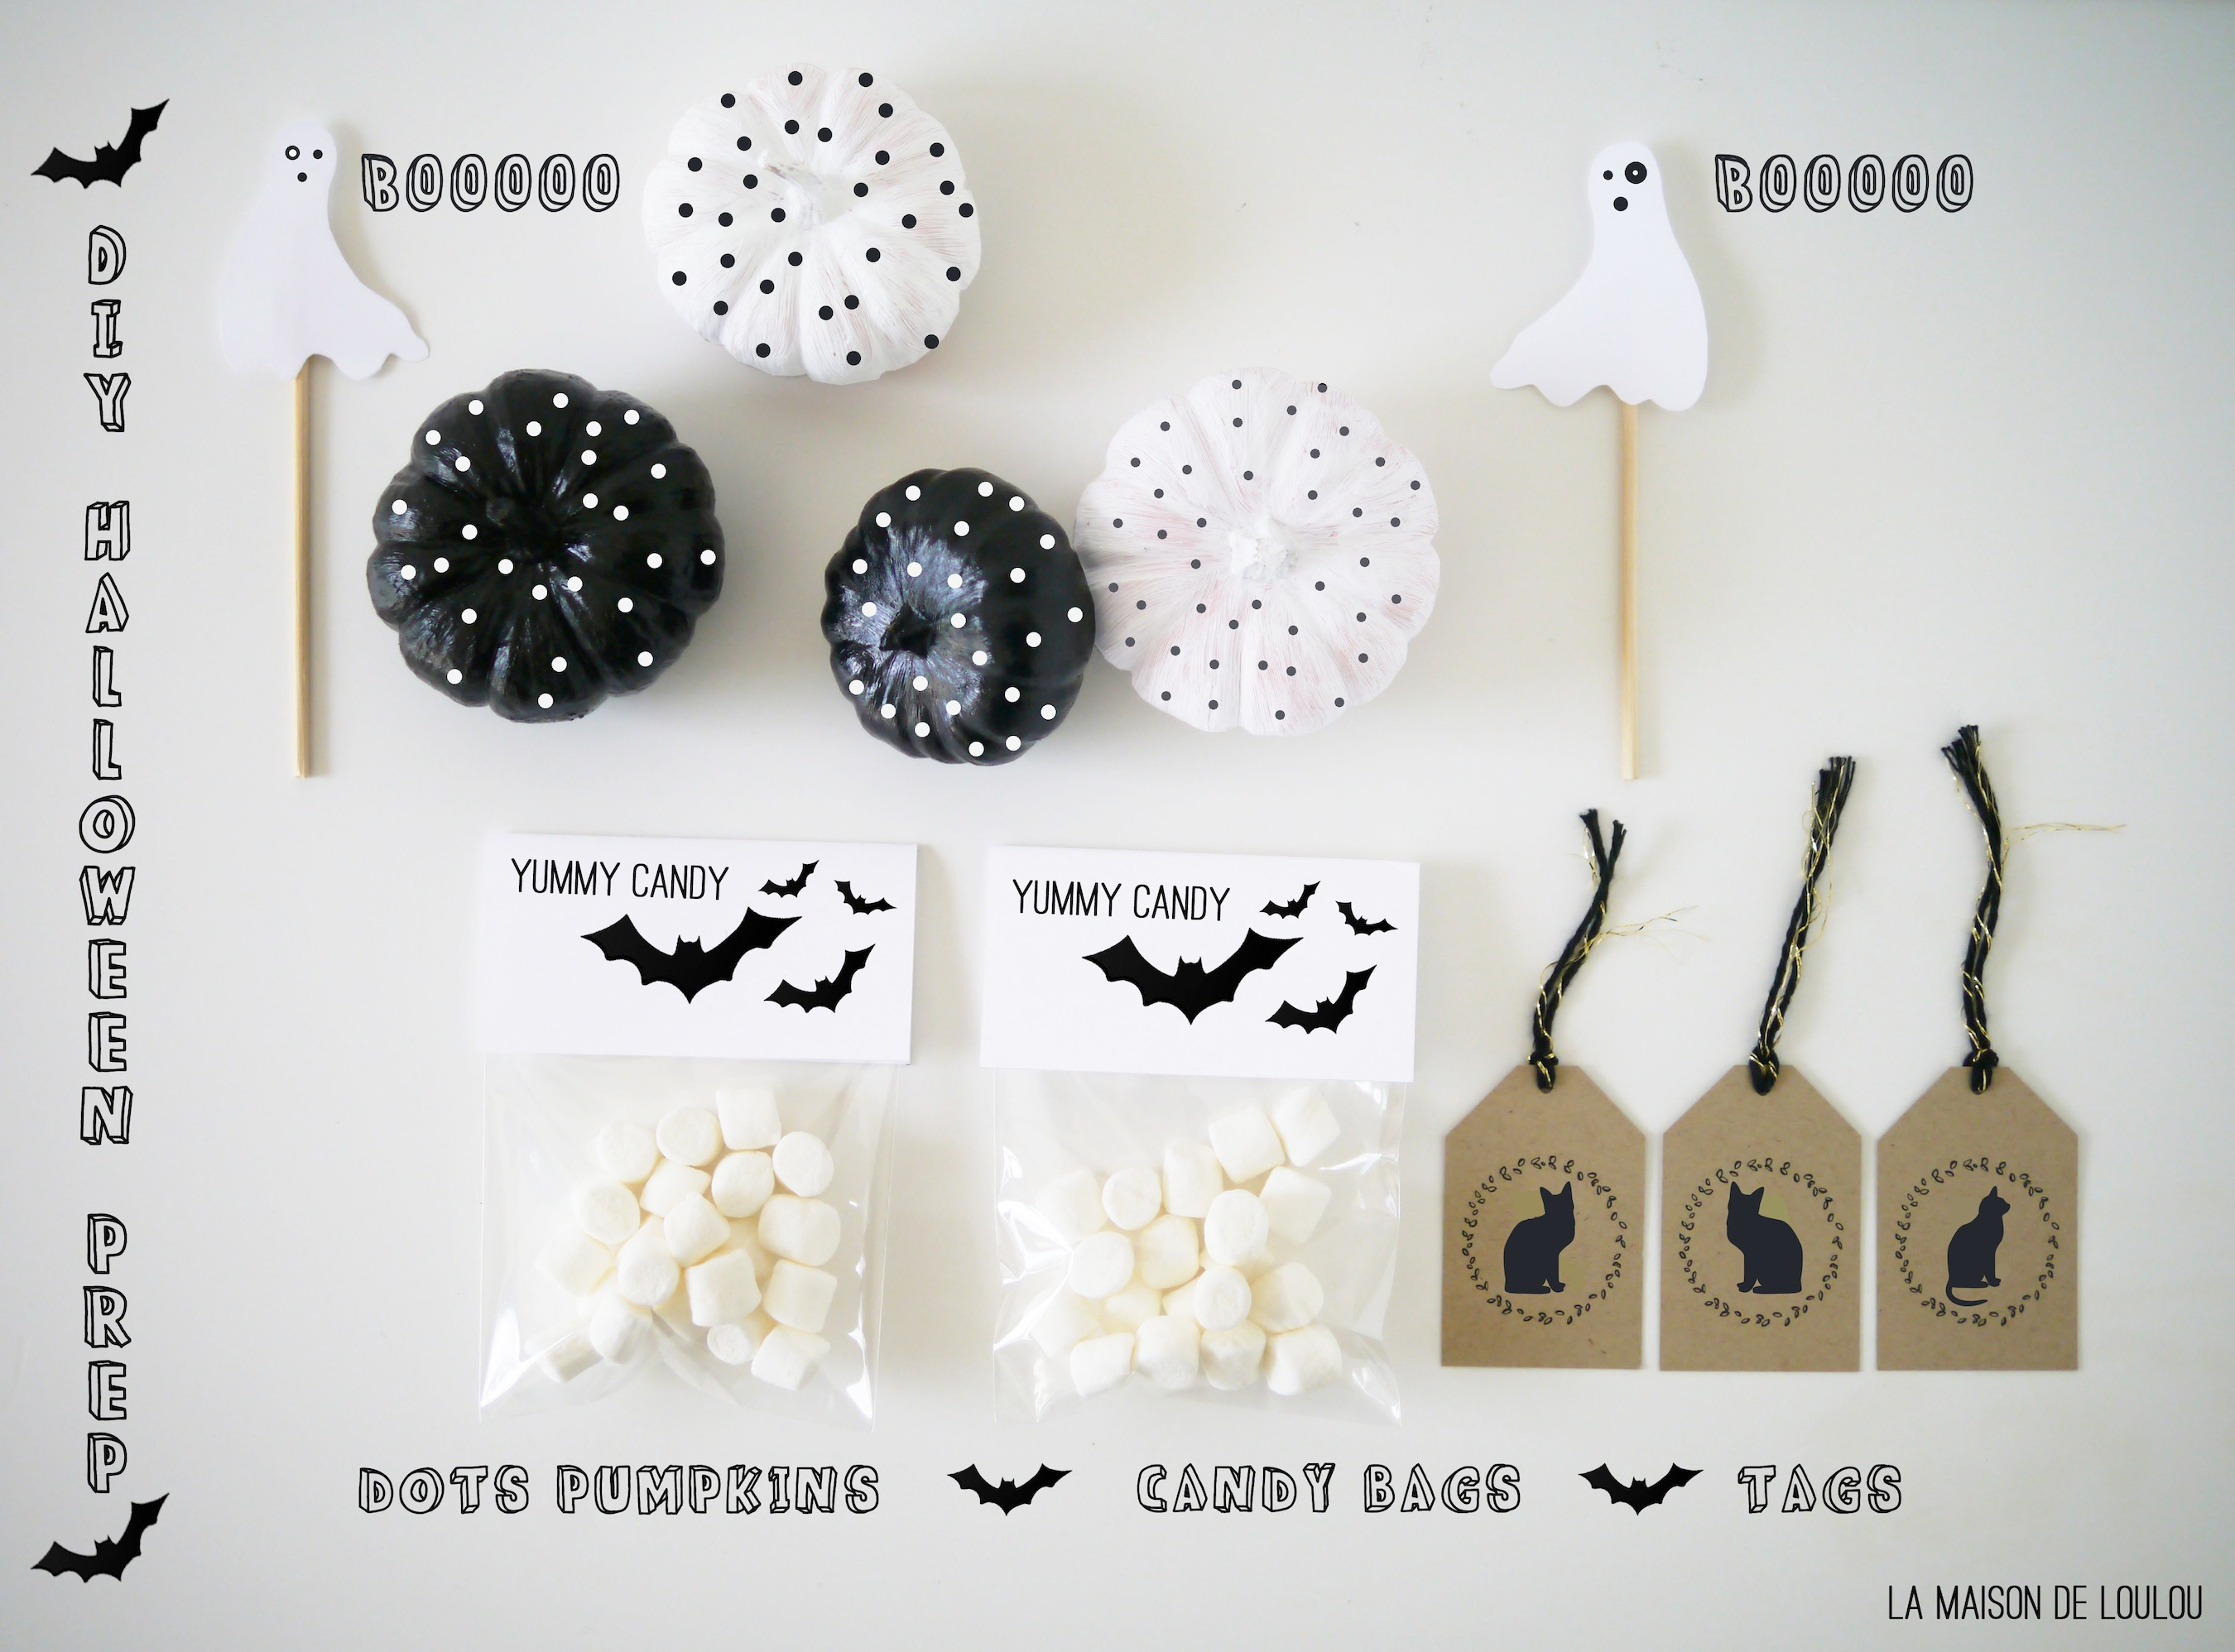 Diy Decoracion Halloween ~ Halloween DIY?s  Dots paint pumpkins, Candy bag, black cat tags